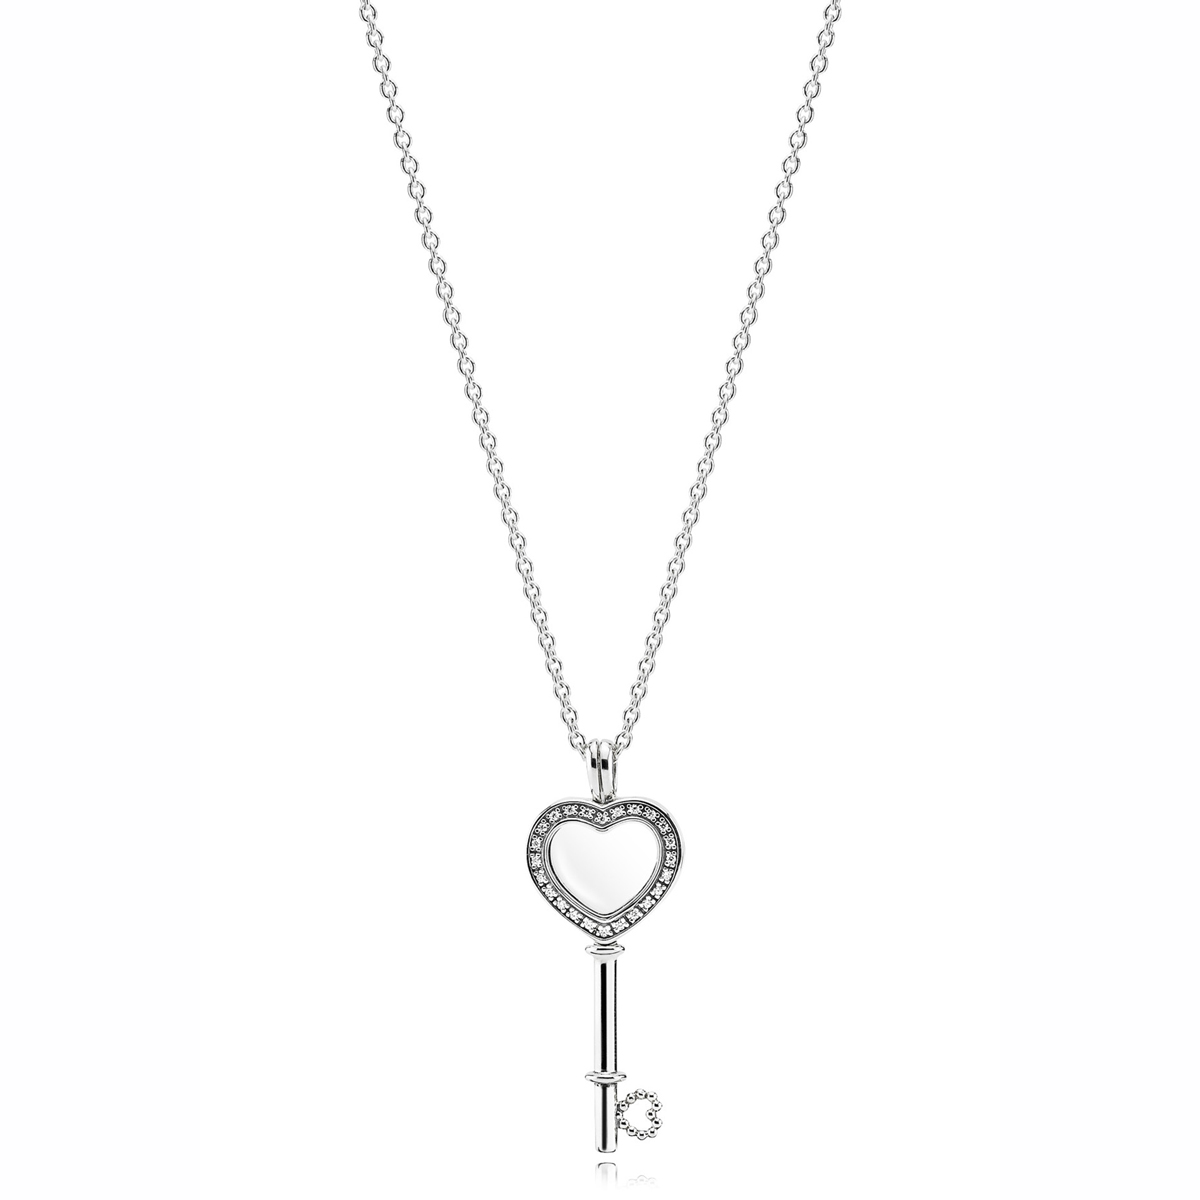 watches necklace accent heart designs overstock db orders on jewelry love sterling key diamond over product free silver shipping